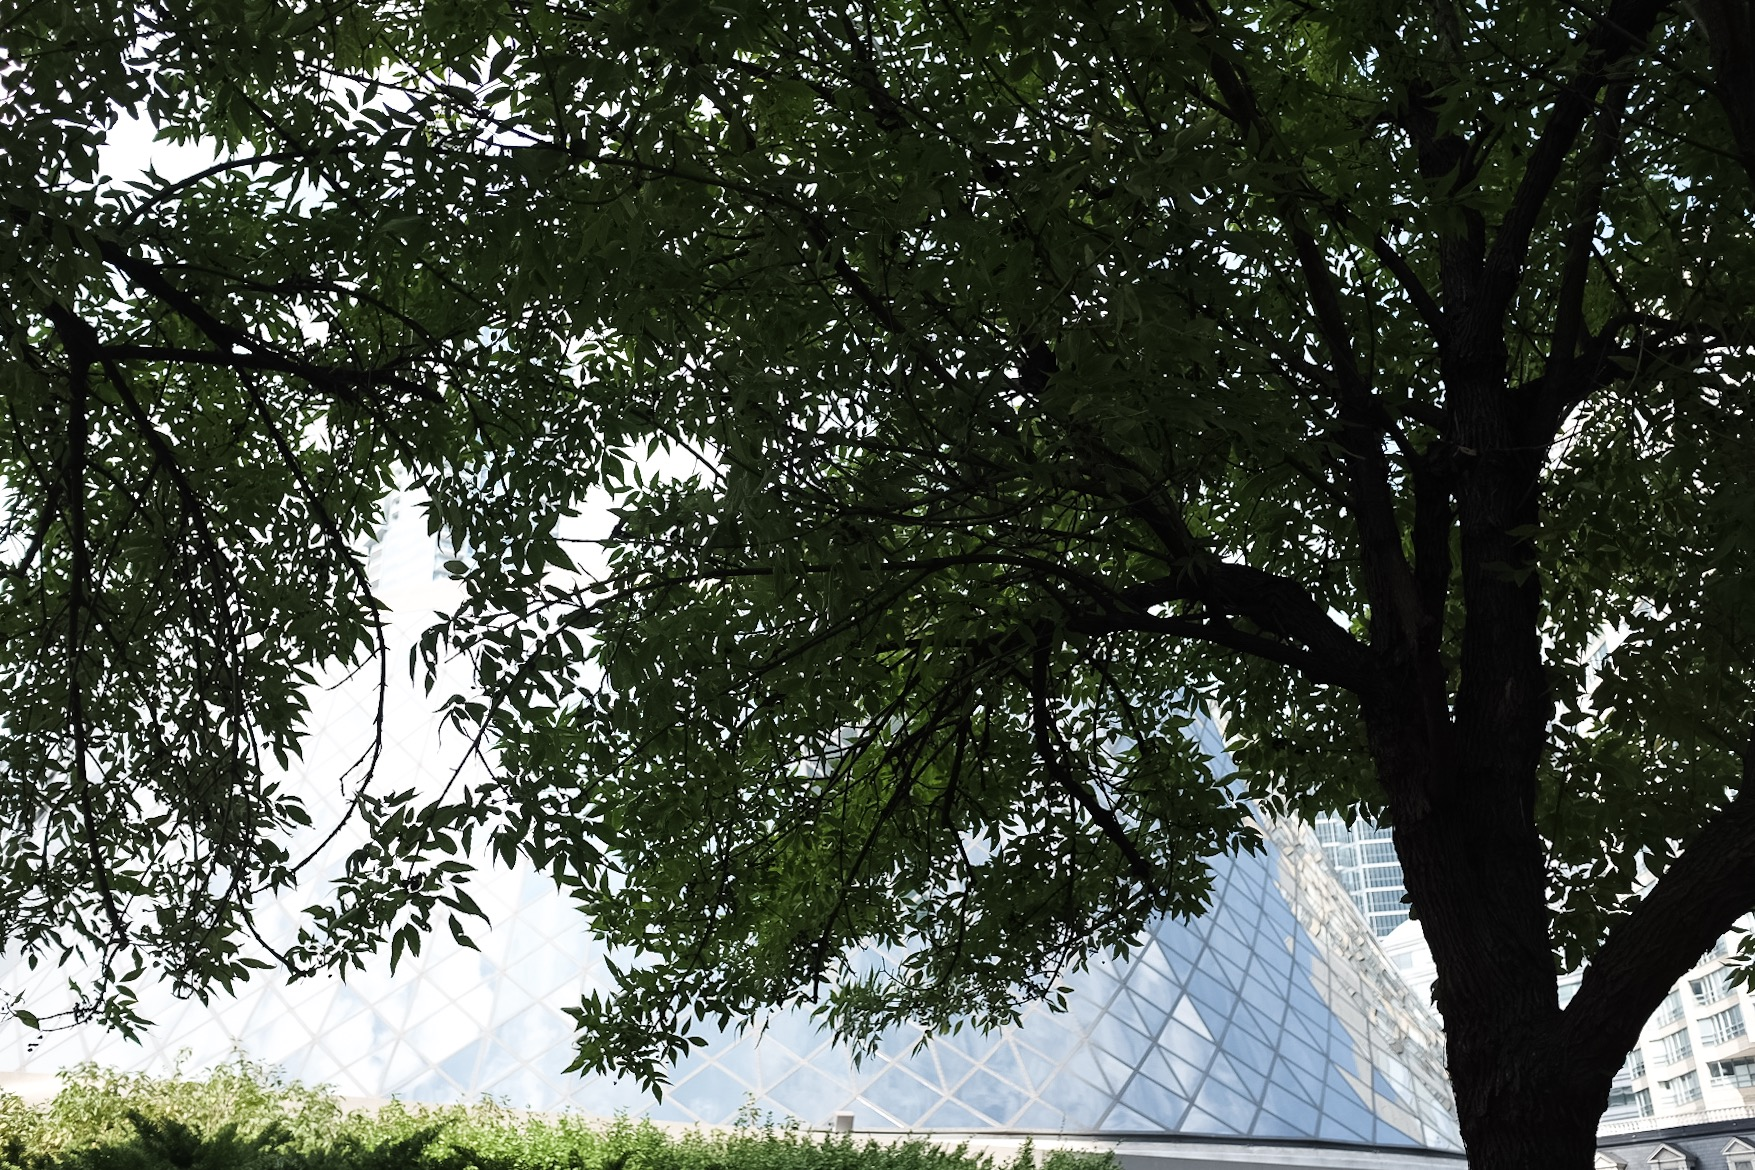 Hidden behind the tree is Roy Thompson Hall, one of the main venues for the festival and one of the iconic buildings in Toronto.